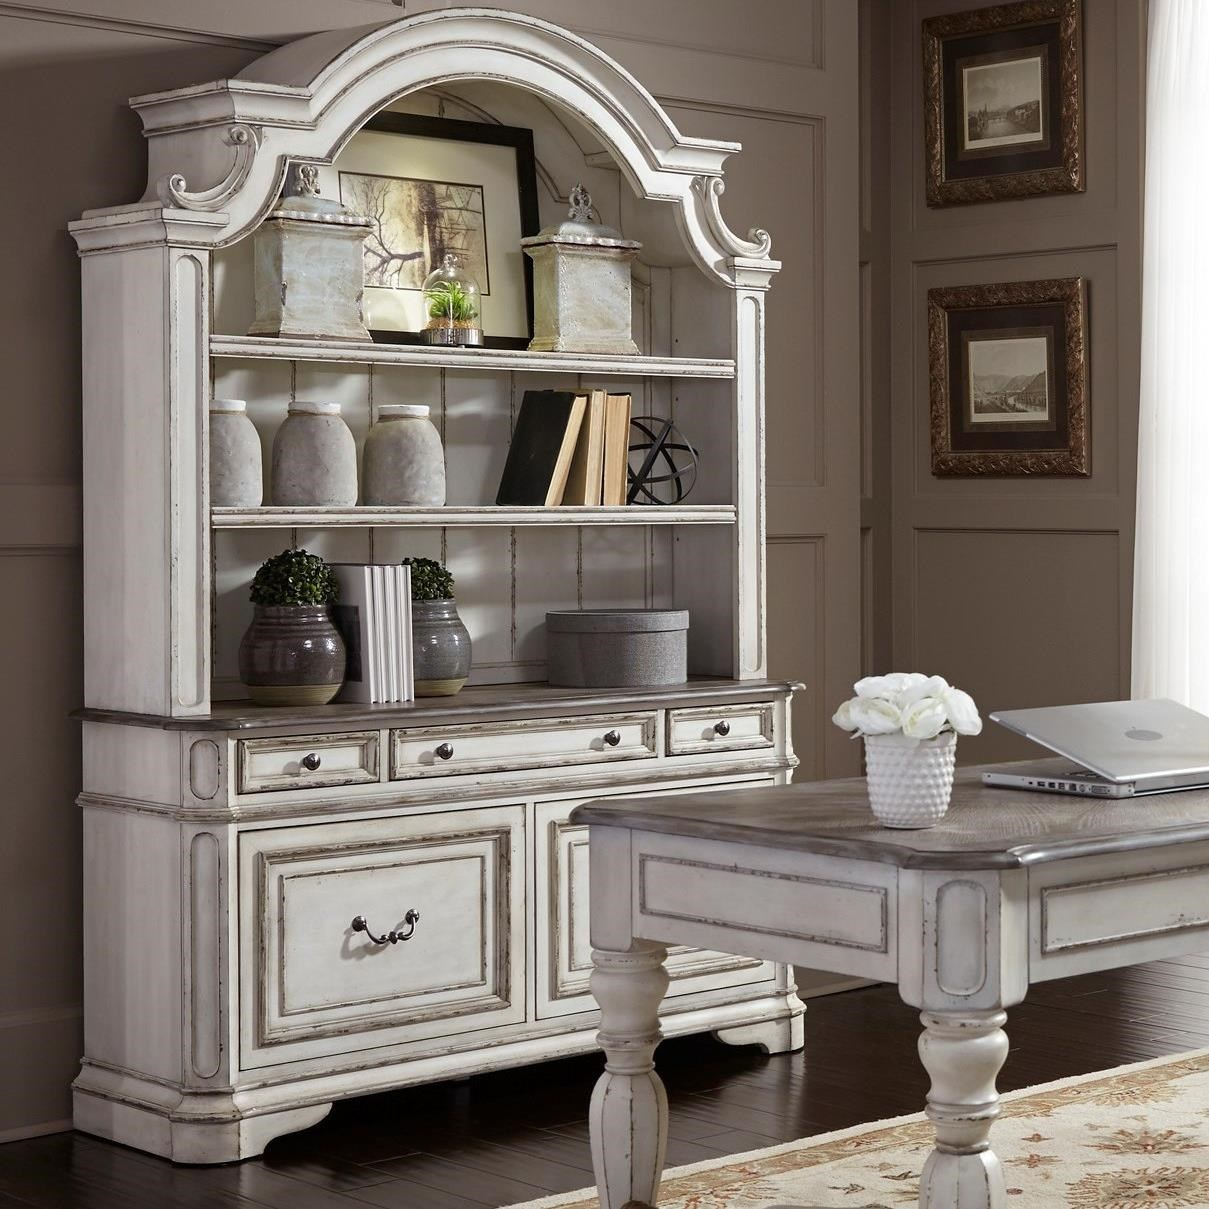 Superior Liberty Furniture Magnolia Manor Office Credenza And Hutch With Touch  Lighting   Great American Home Store   Bookcase   2 Pc. With Hutch